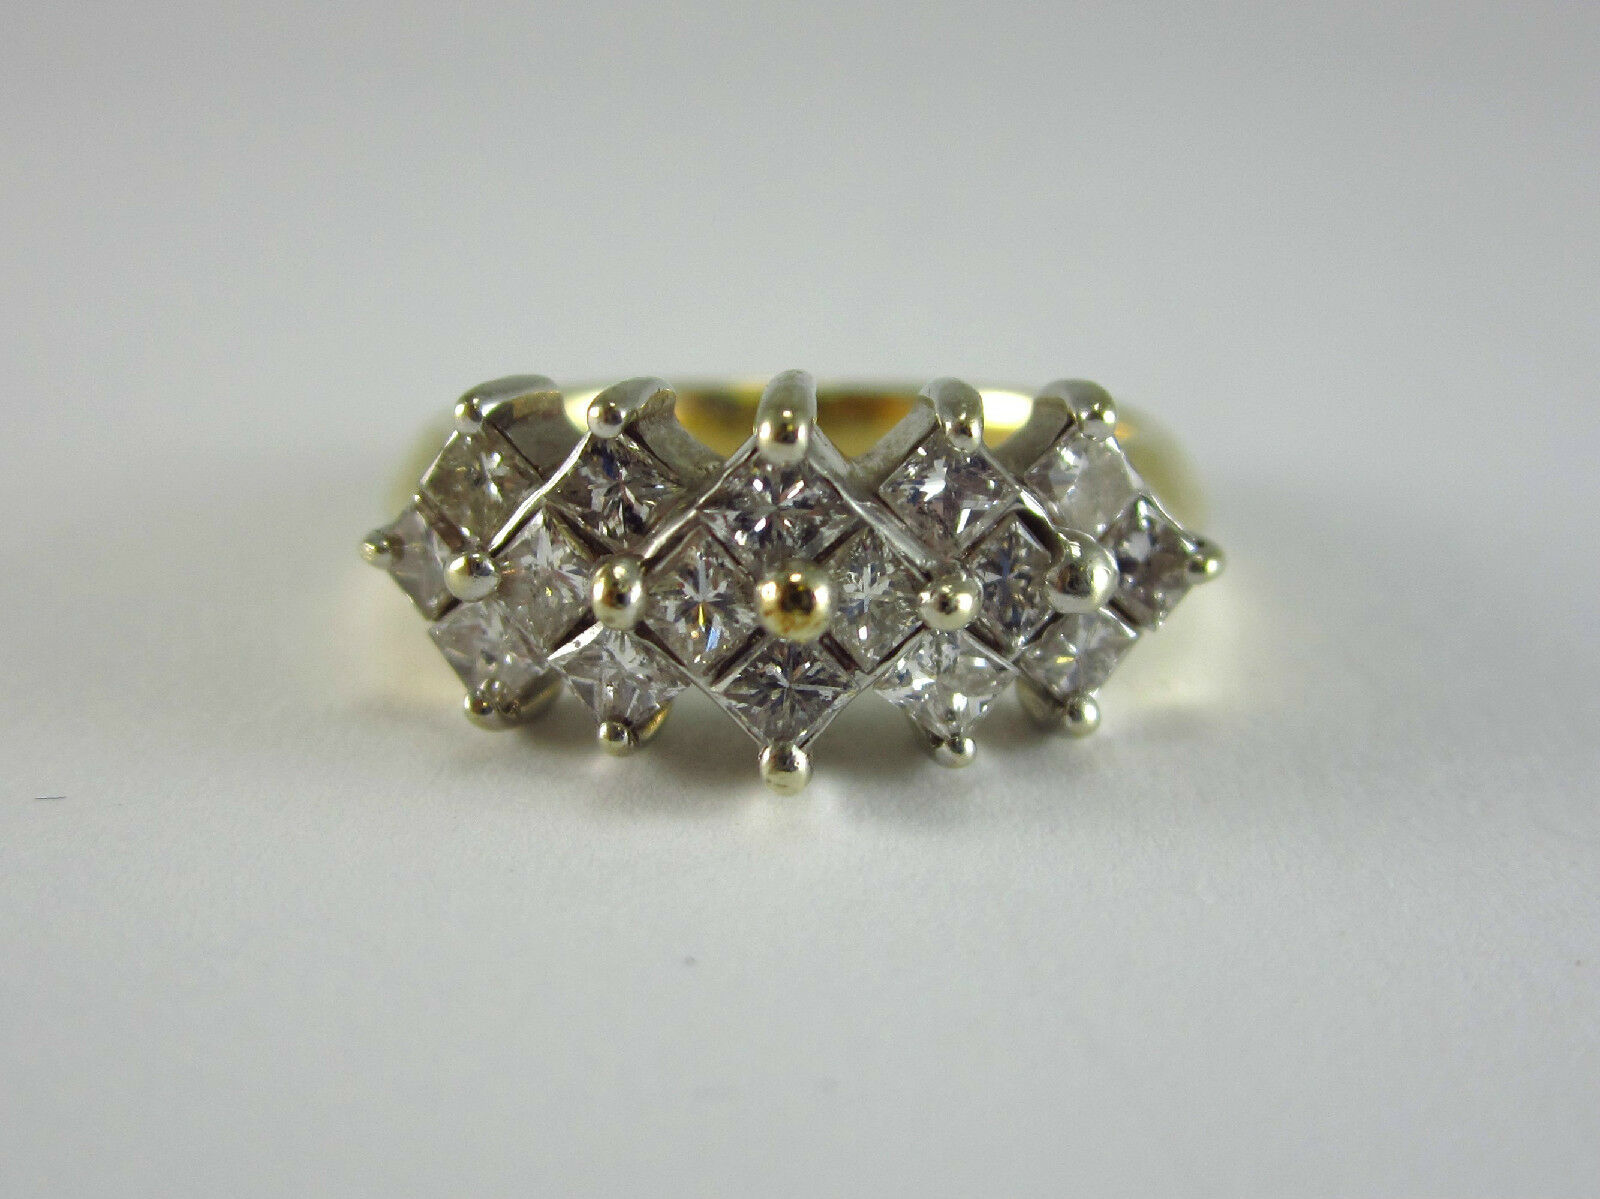 BEAUTIFUL LADIES 14K YELLOW gold PRINCESS CUT DIAMOND CLUSTER RING 5.2G